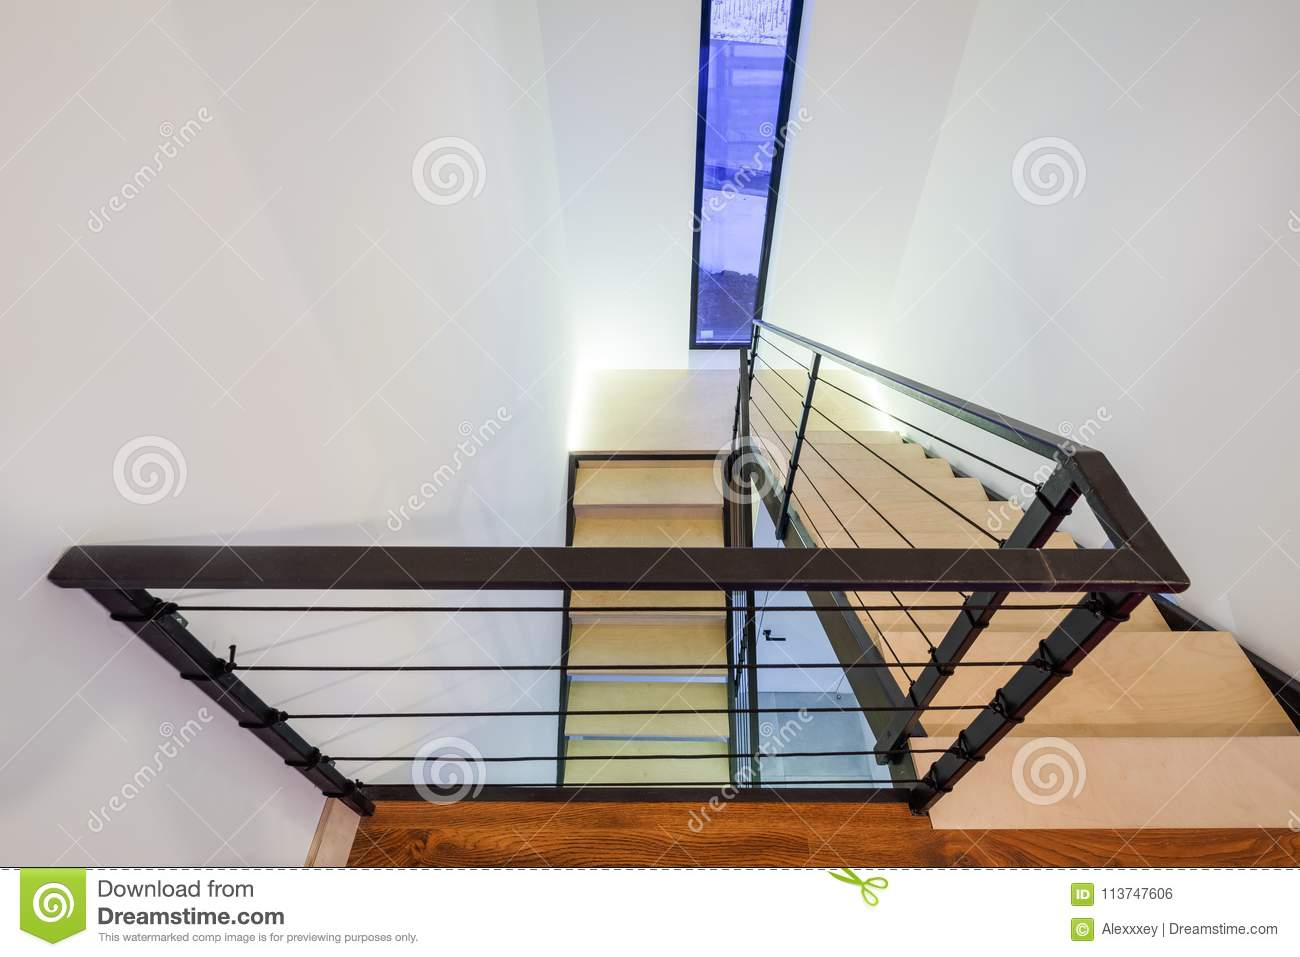 Download Staircase In A Private House With Wooden Steps And Metal Railing  Stock Photo   Image